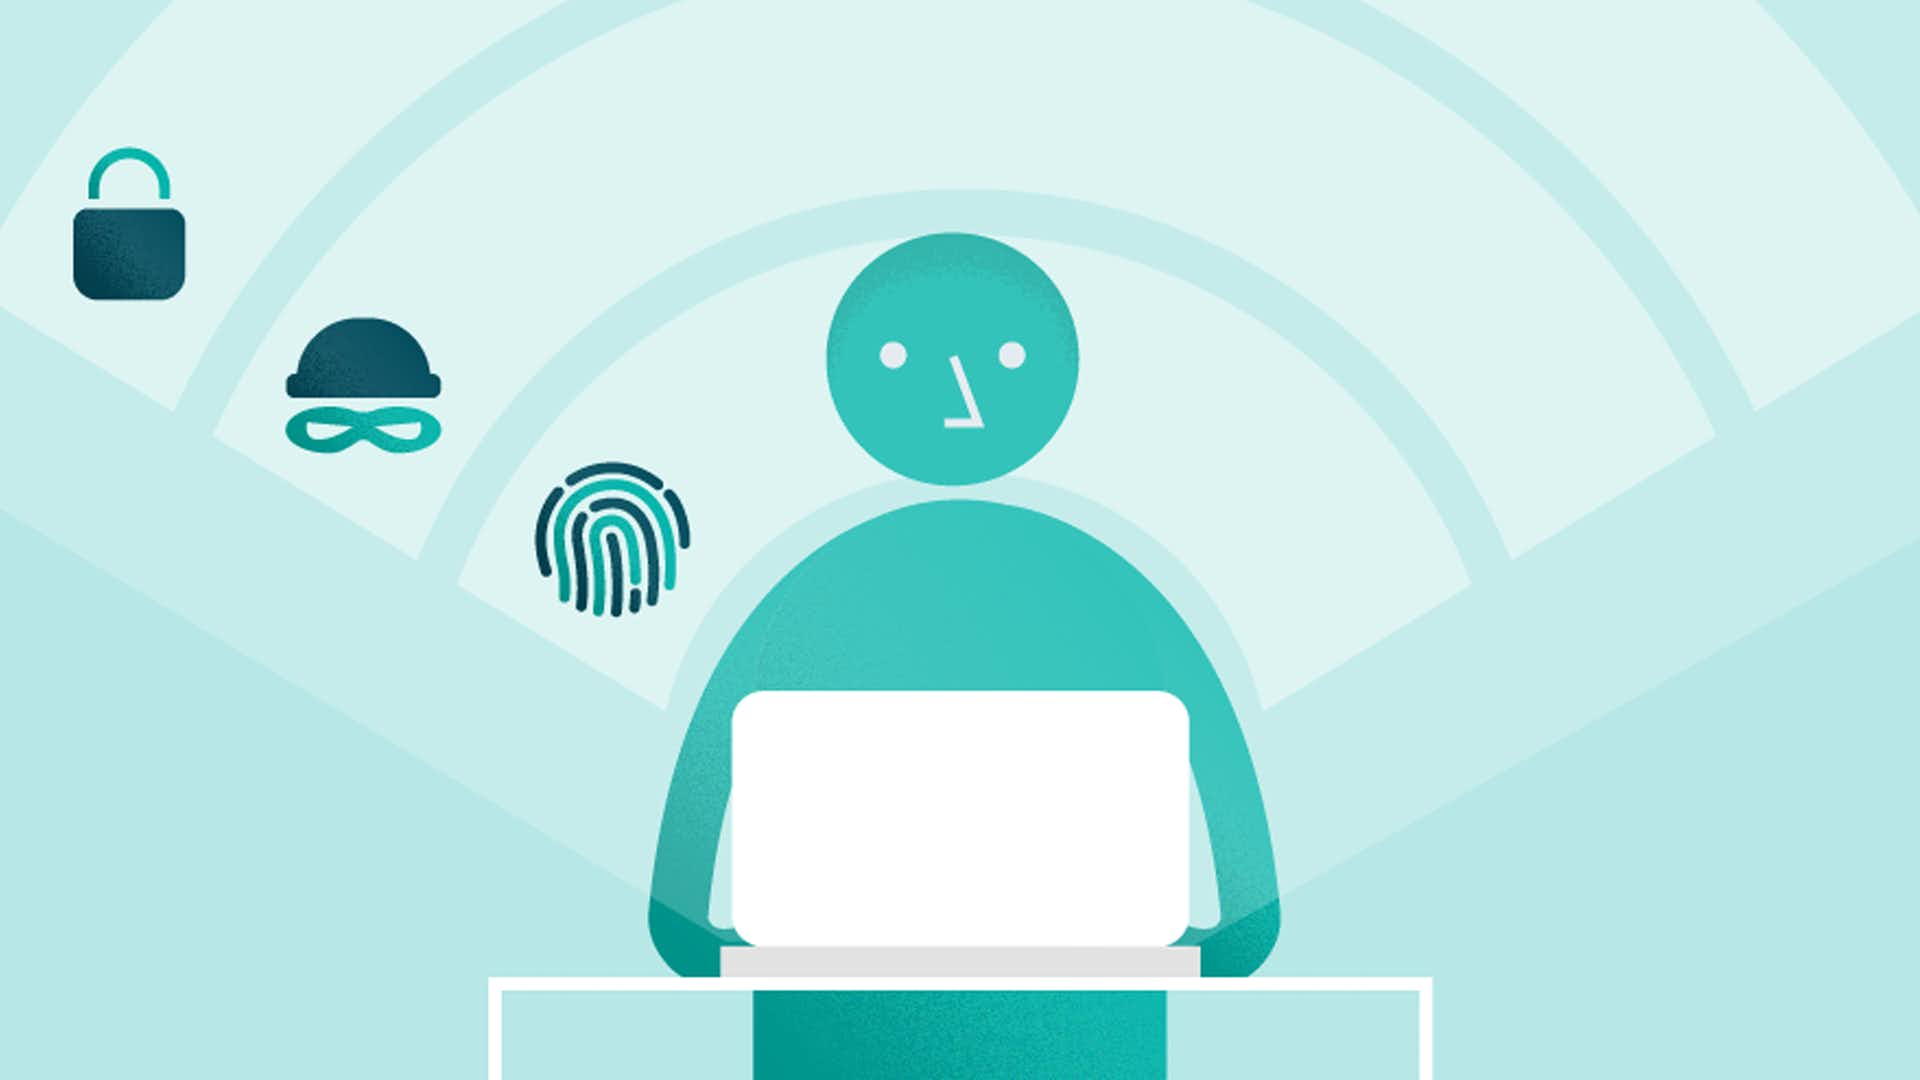 Header graphic of a person using a laptop with online security icons around them.